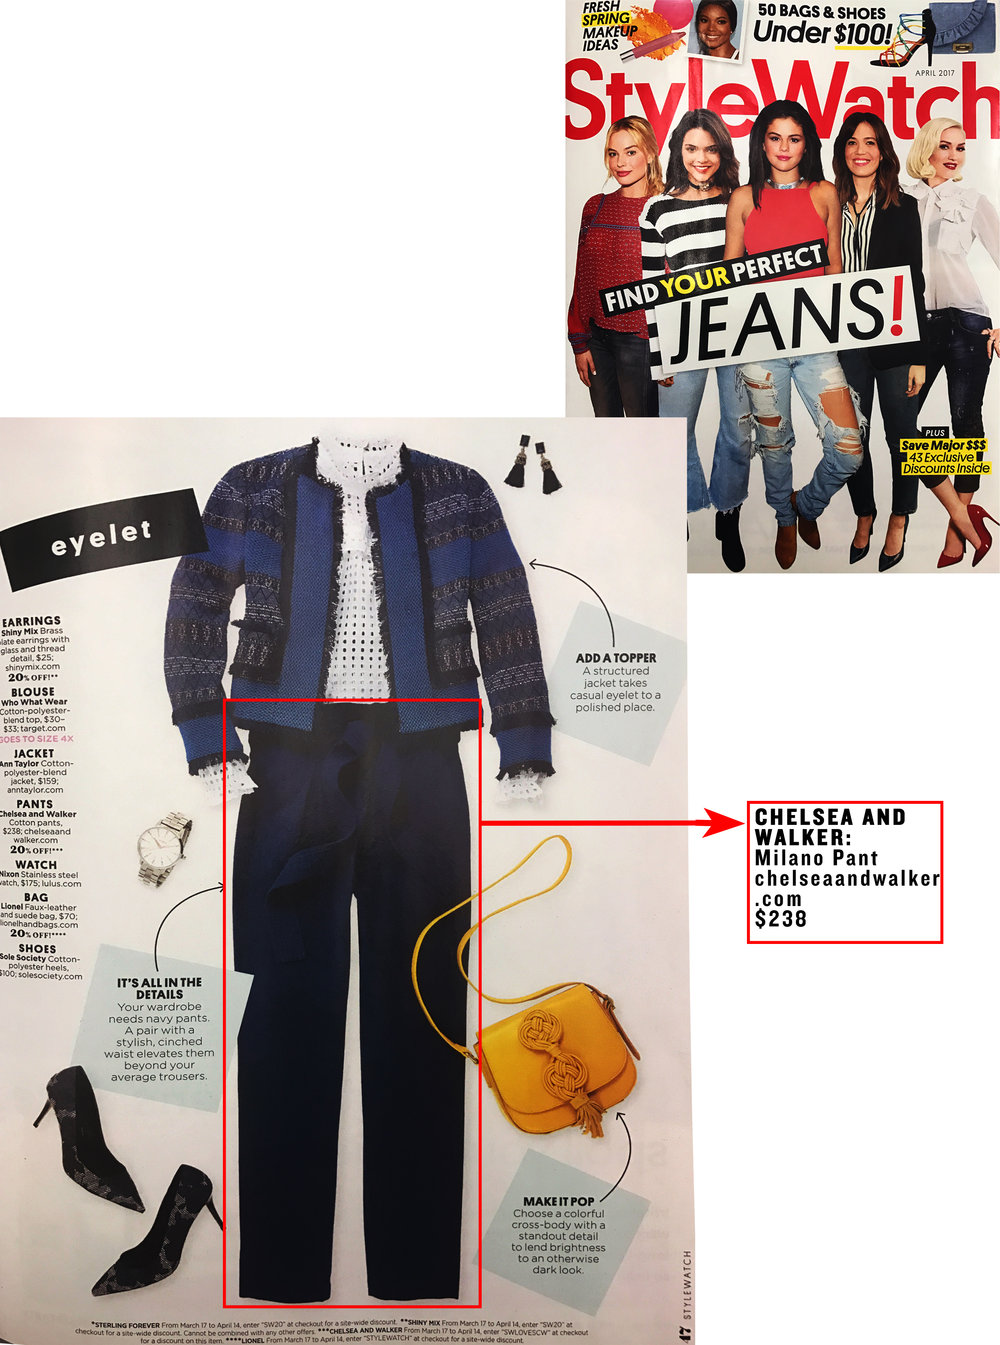 MILANO PANT | StyleWatch Magazine April 2017 currently OOS - Shop other styles here